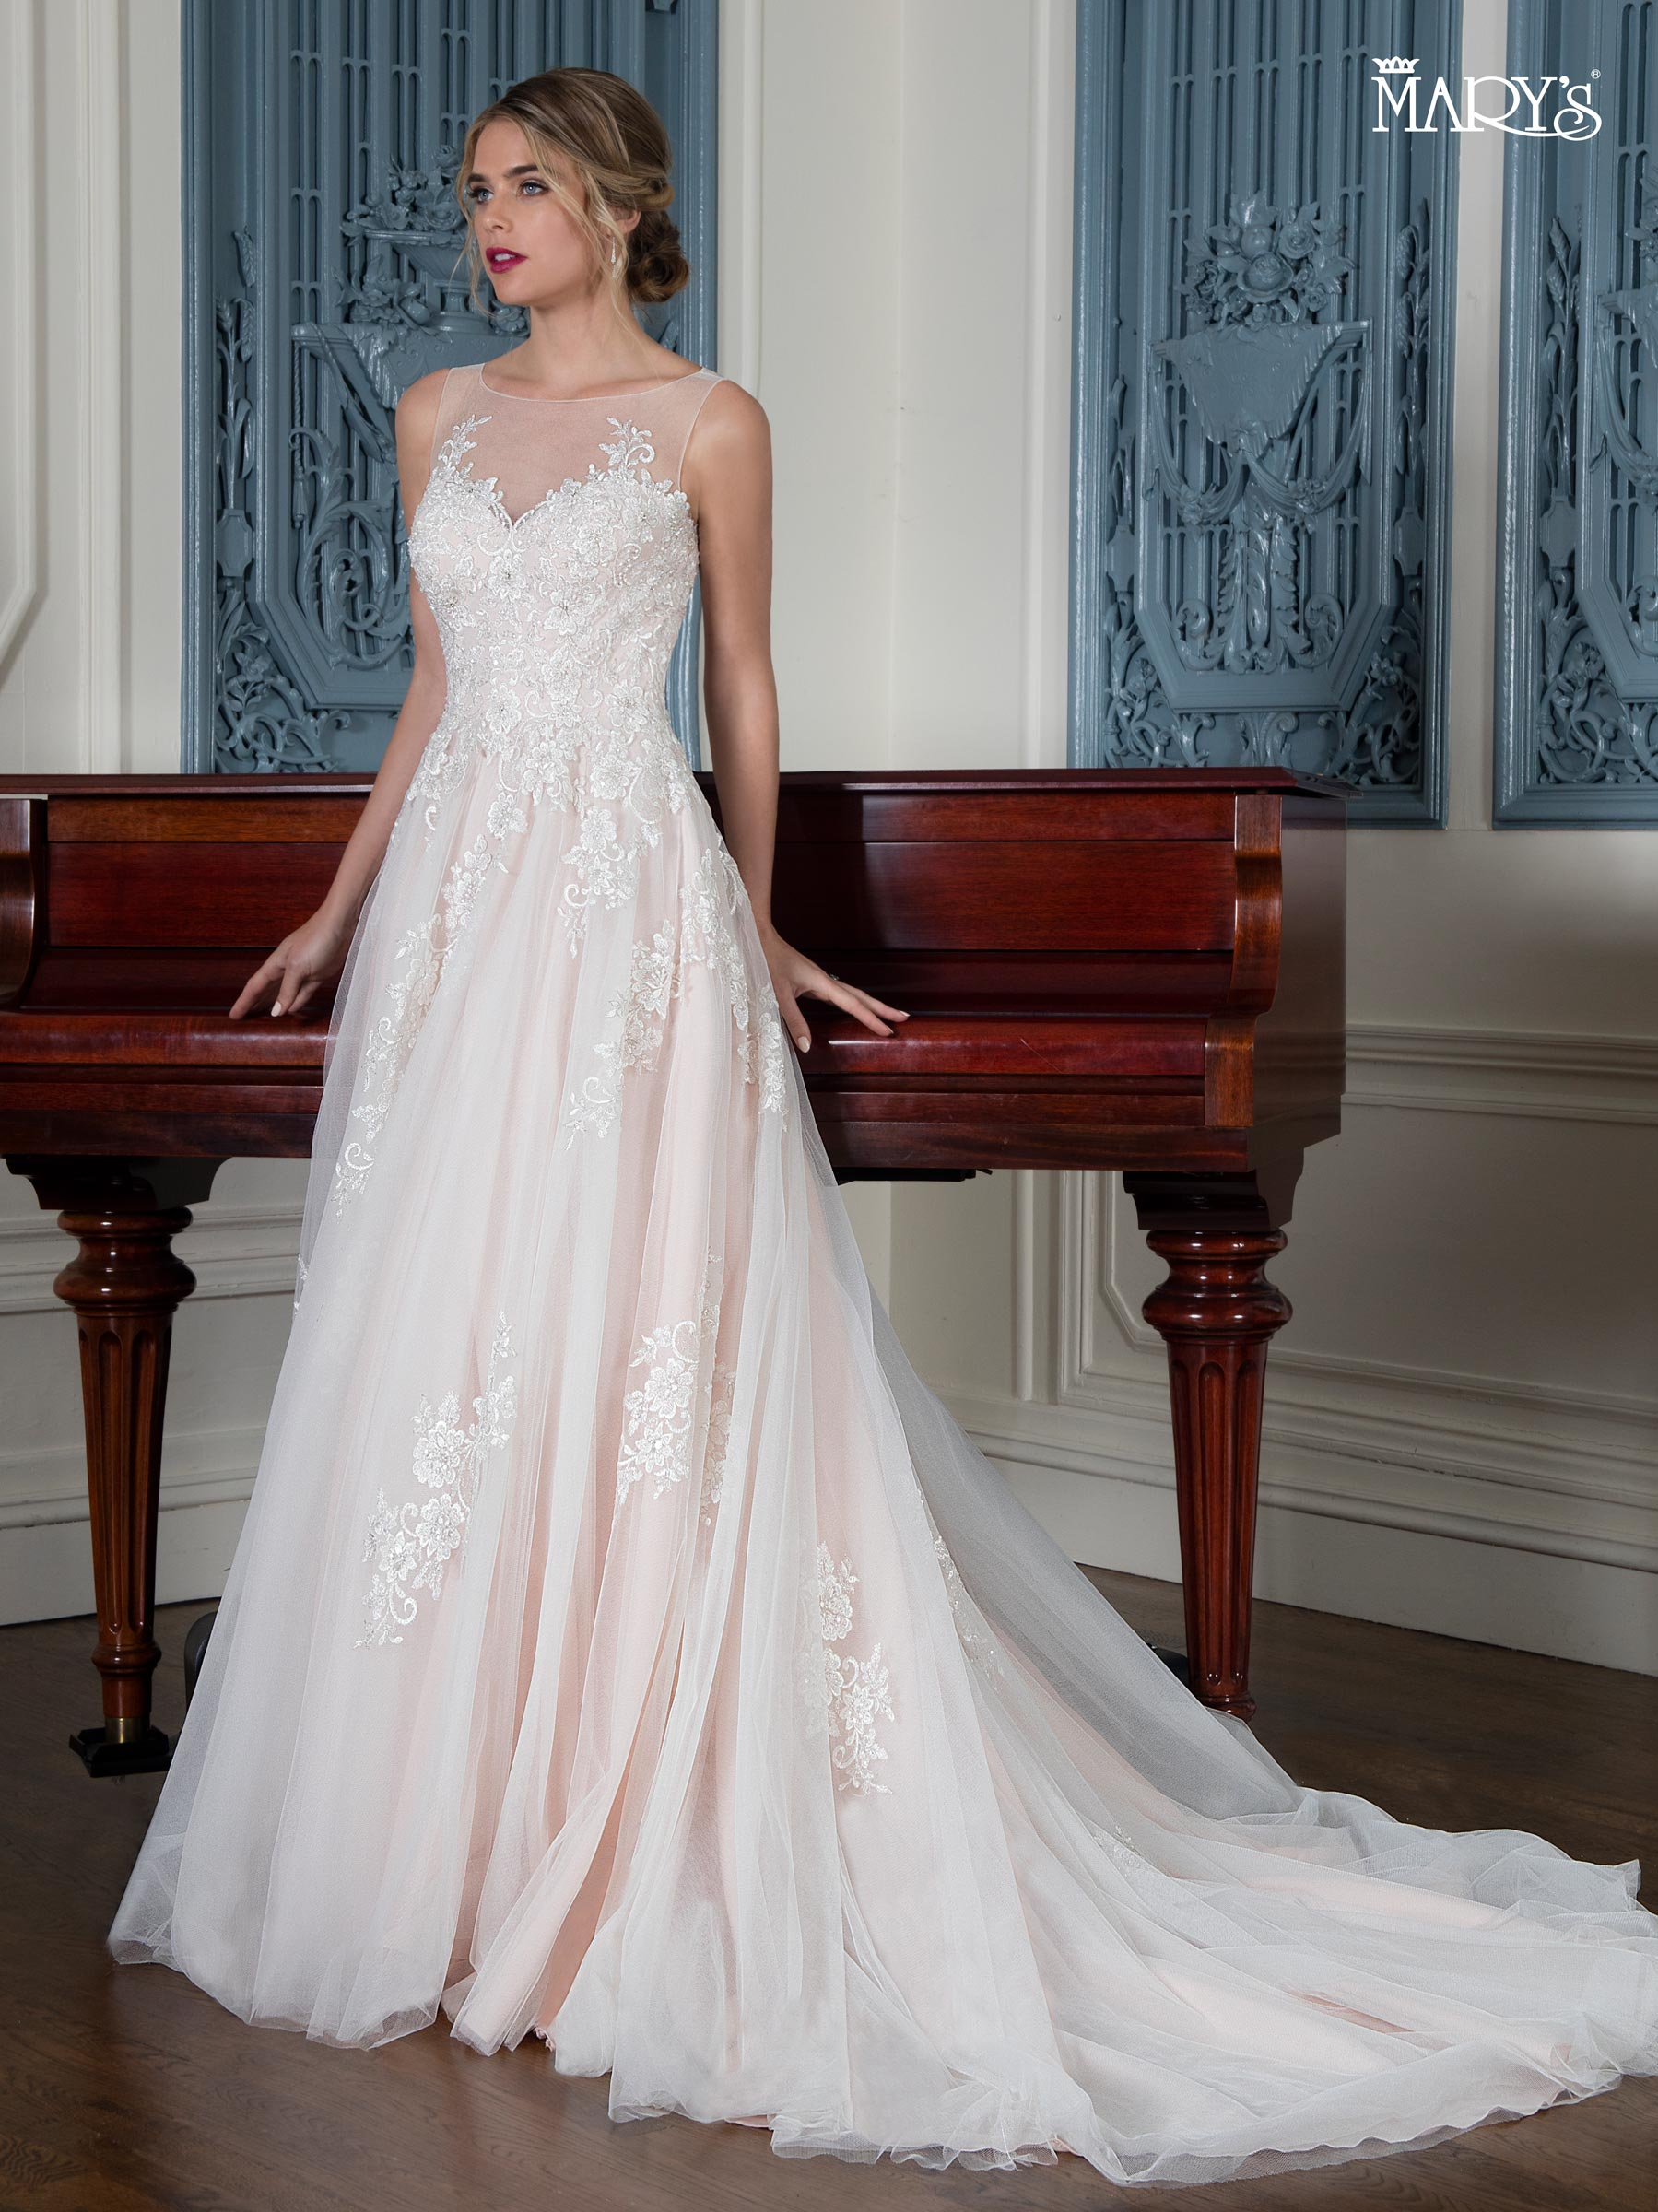 Bridal Wedding Dresses | Mary's | Style - MB3005